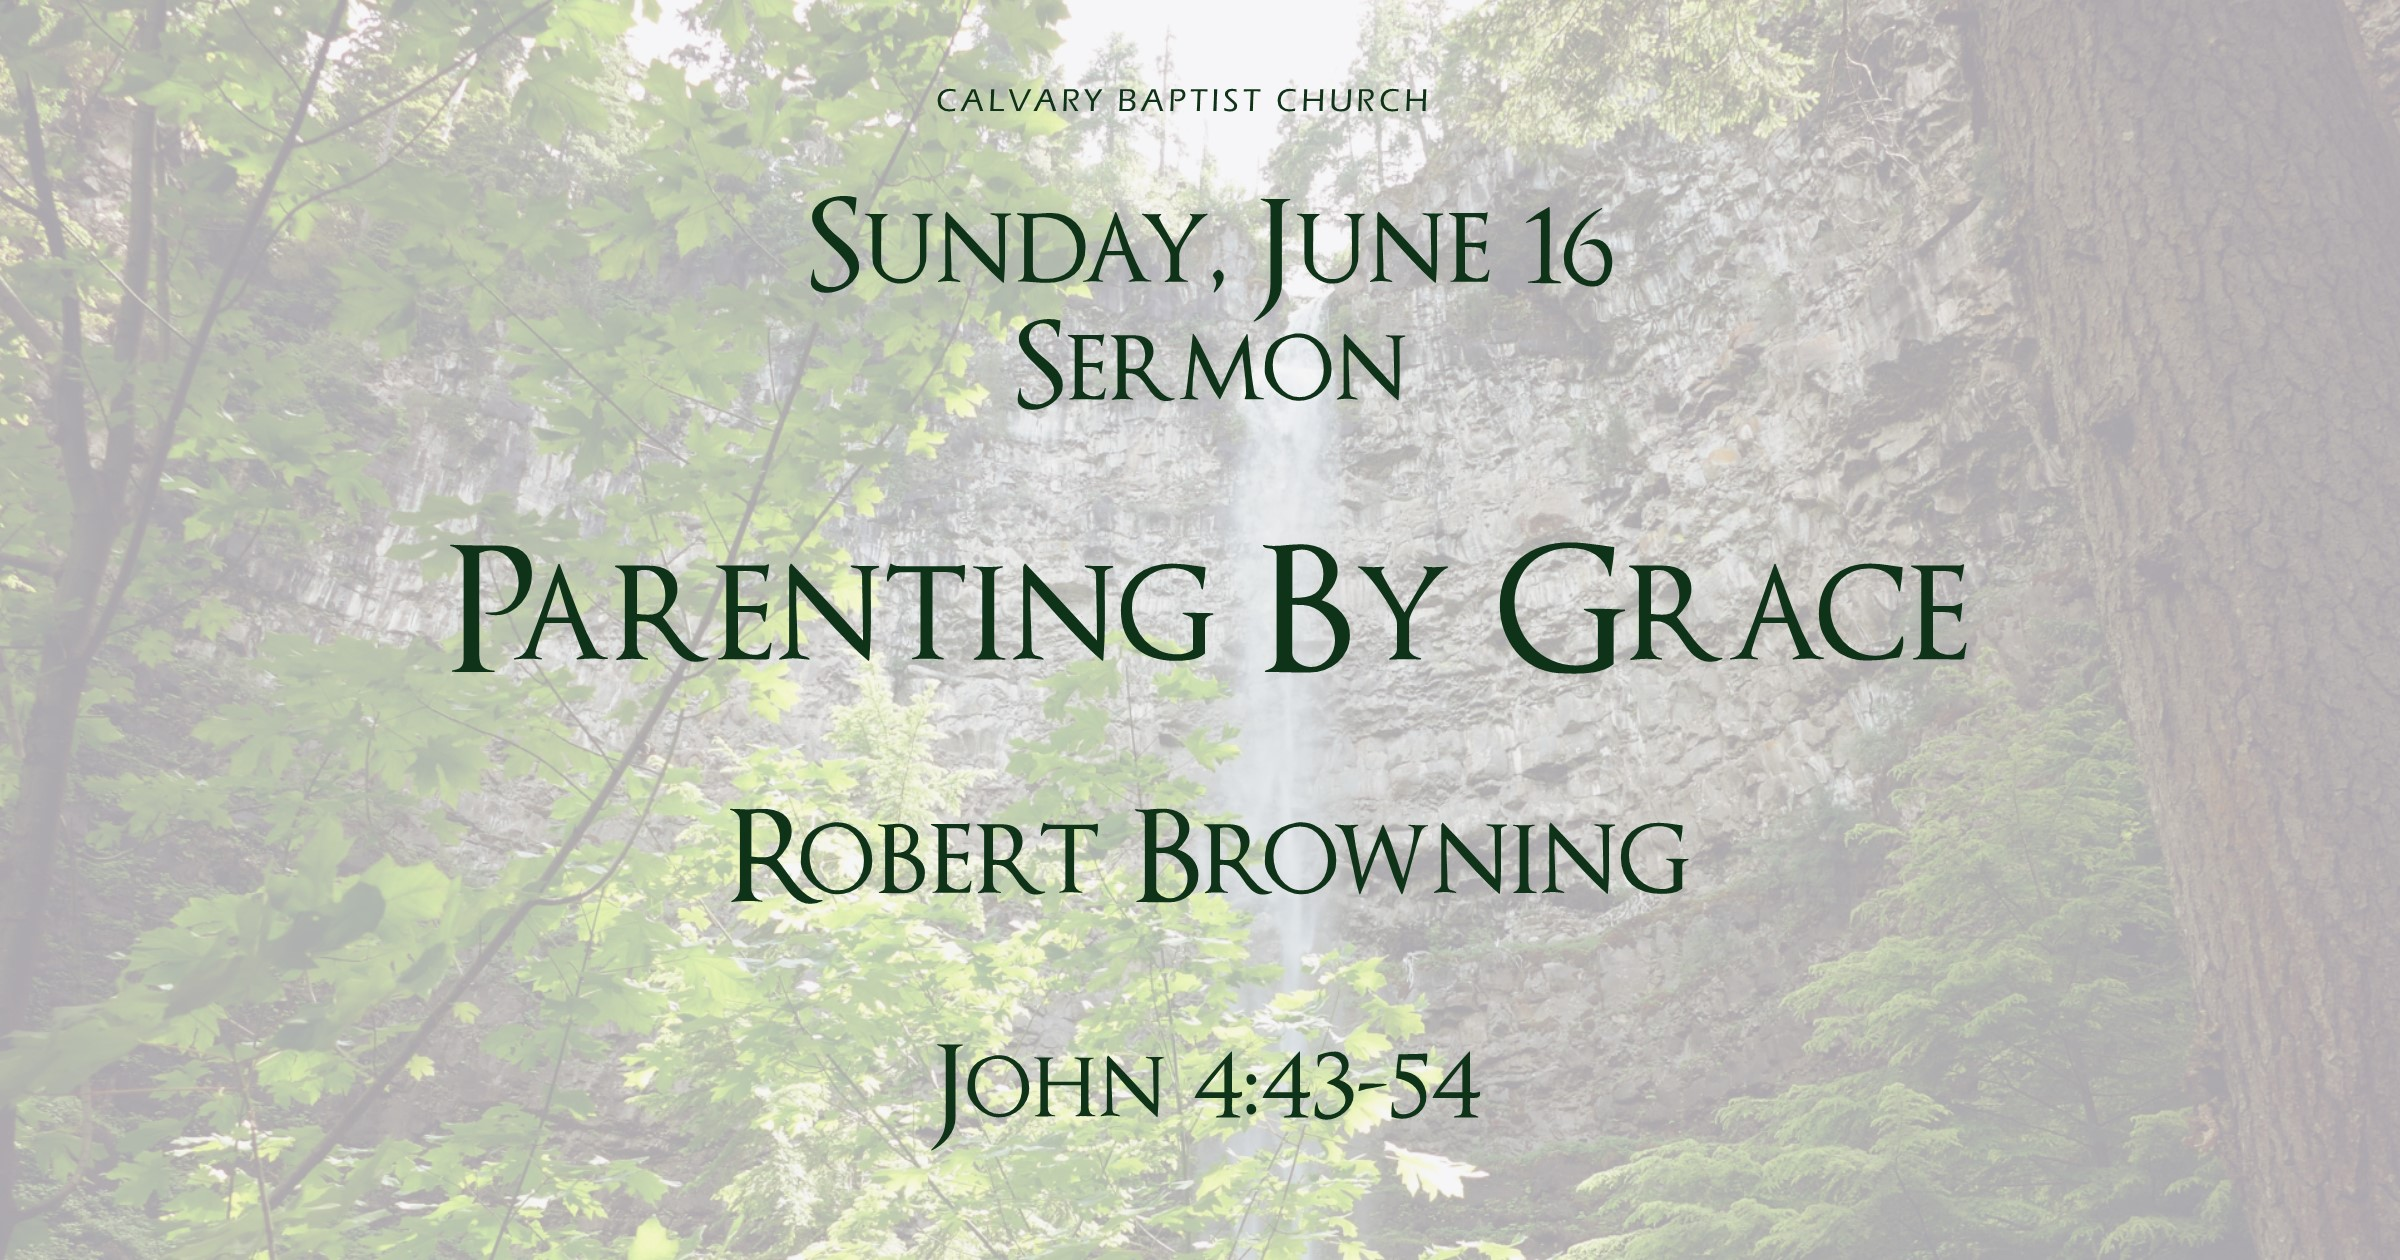 June 16 sermon image fb.jpg